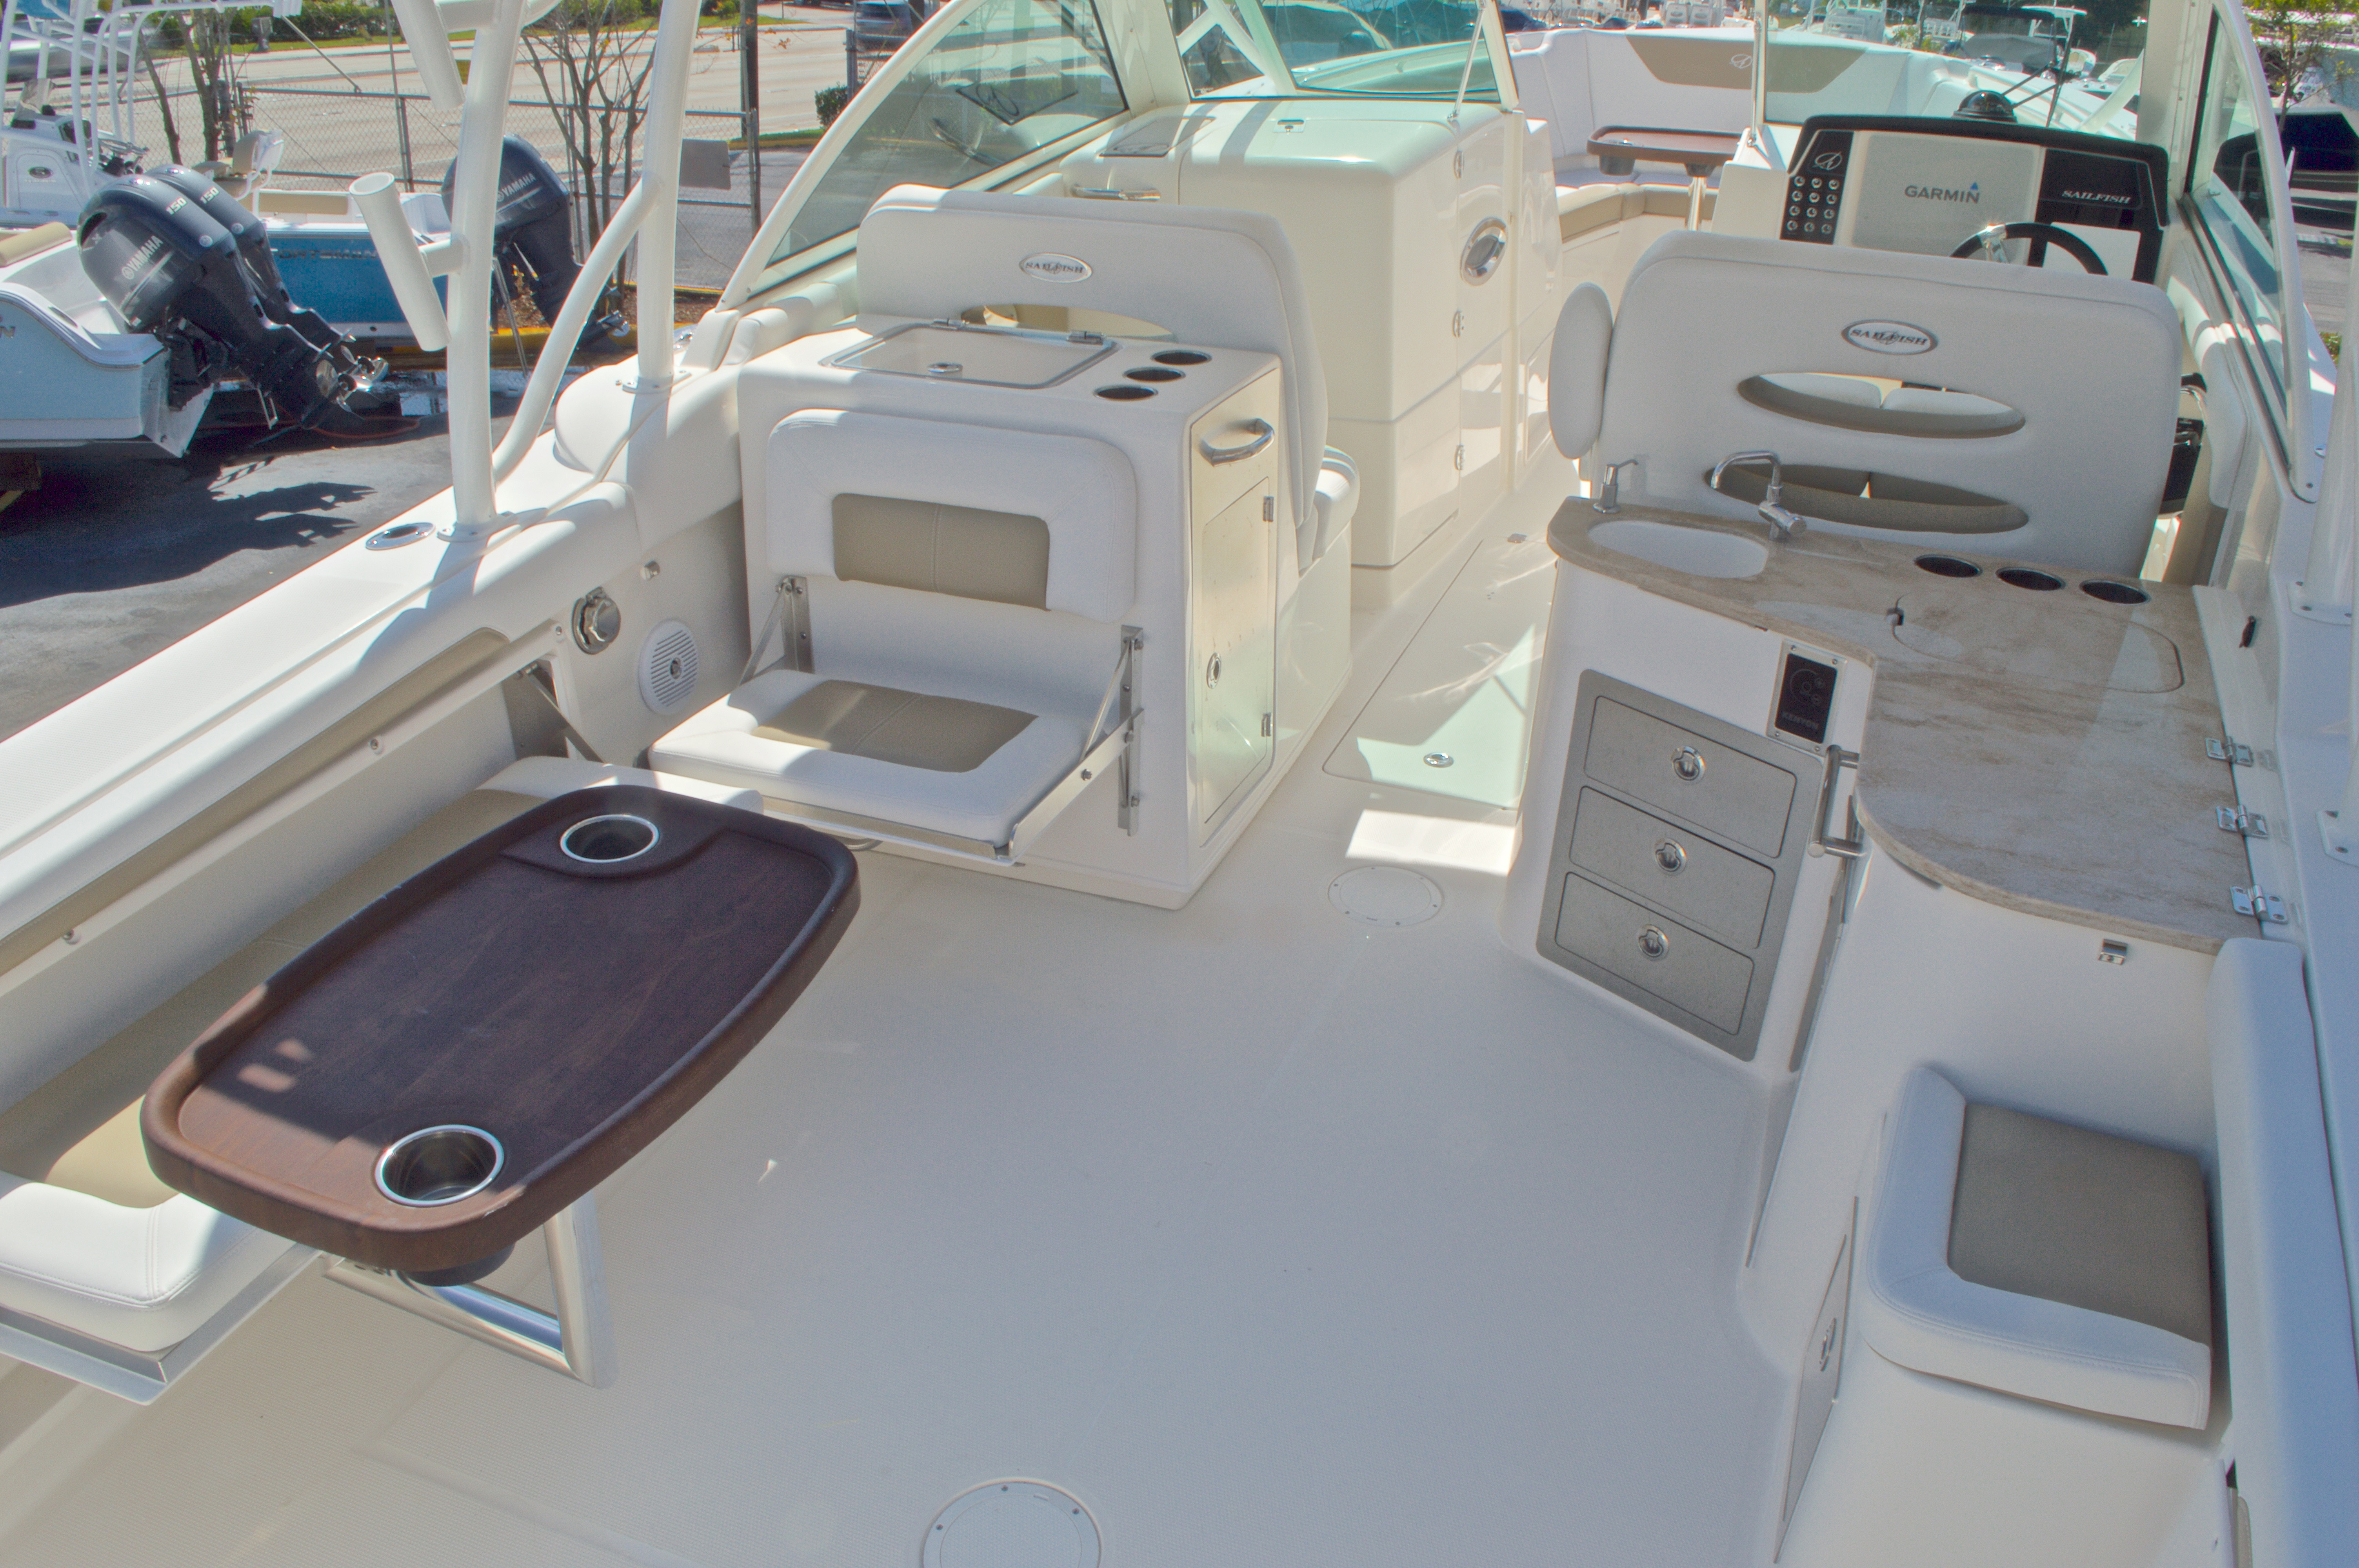 Thumbnail 12 for New 2016 Sailfish 325 Dual Console boat for sale in West Palm Beach, FL